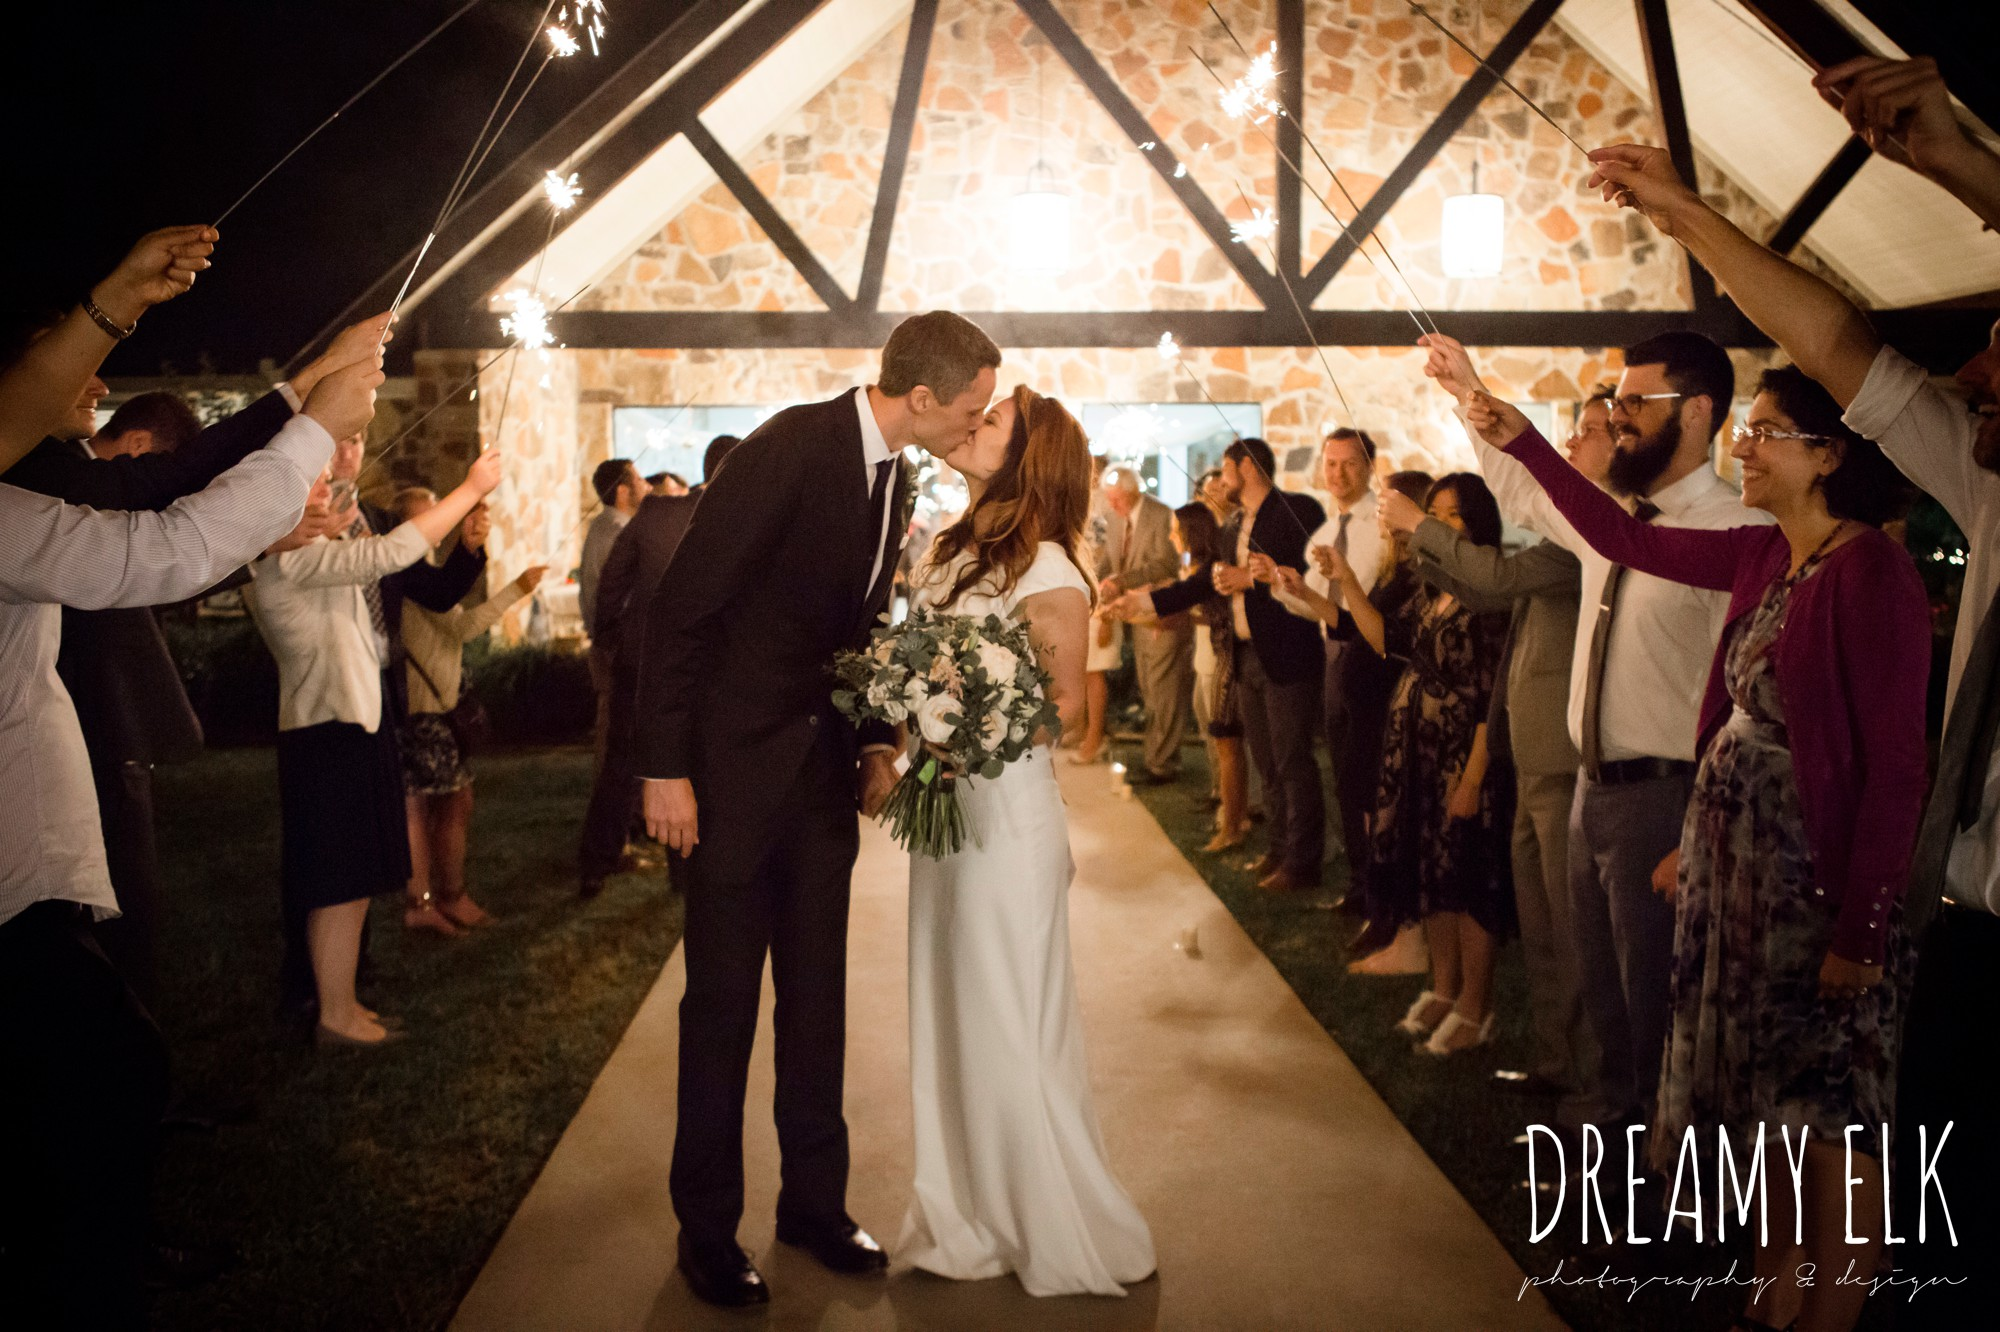 wedding send off with sparklers, night, handmade wedding dress, two piece wedding dress, gray sash, bird cage veil, outdoor april spring wedding photo, double creek crossing, college station, texas, austin wedding photographer {dreamy elk photography and design}